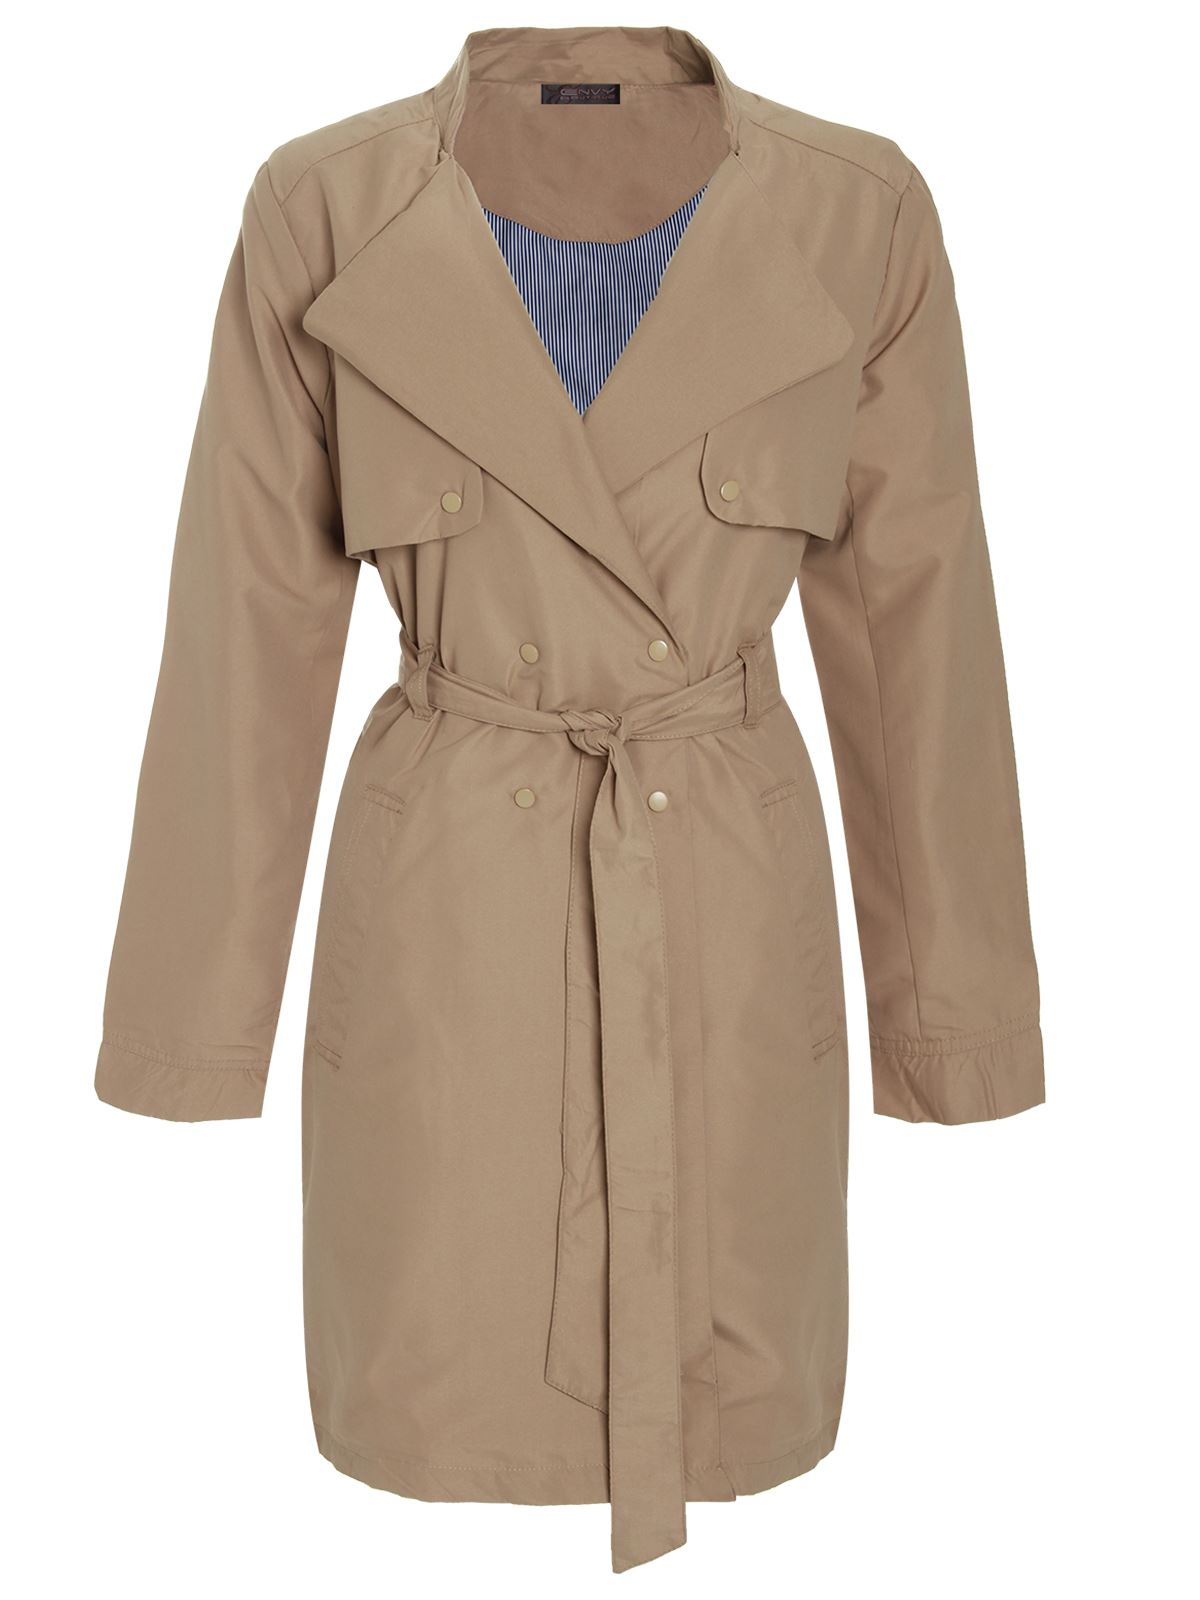 Womens-Ladies-Double-Breasted-Mac-Jacket-Microfibre-Trench-Tie-Belted-Coat